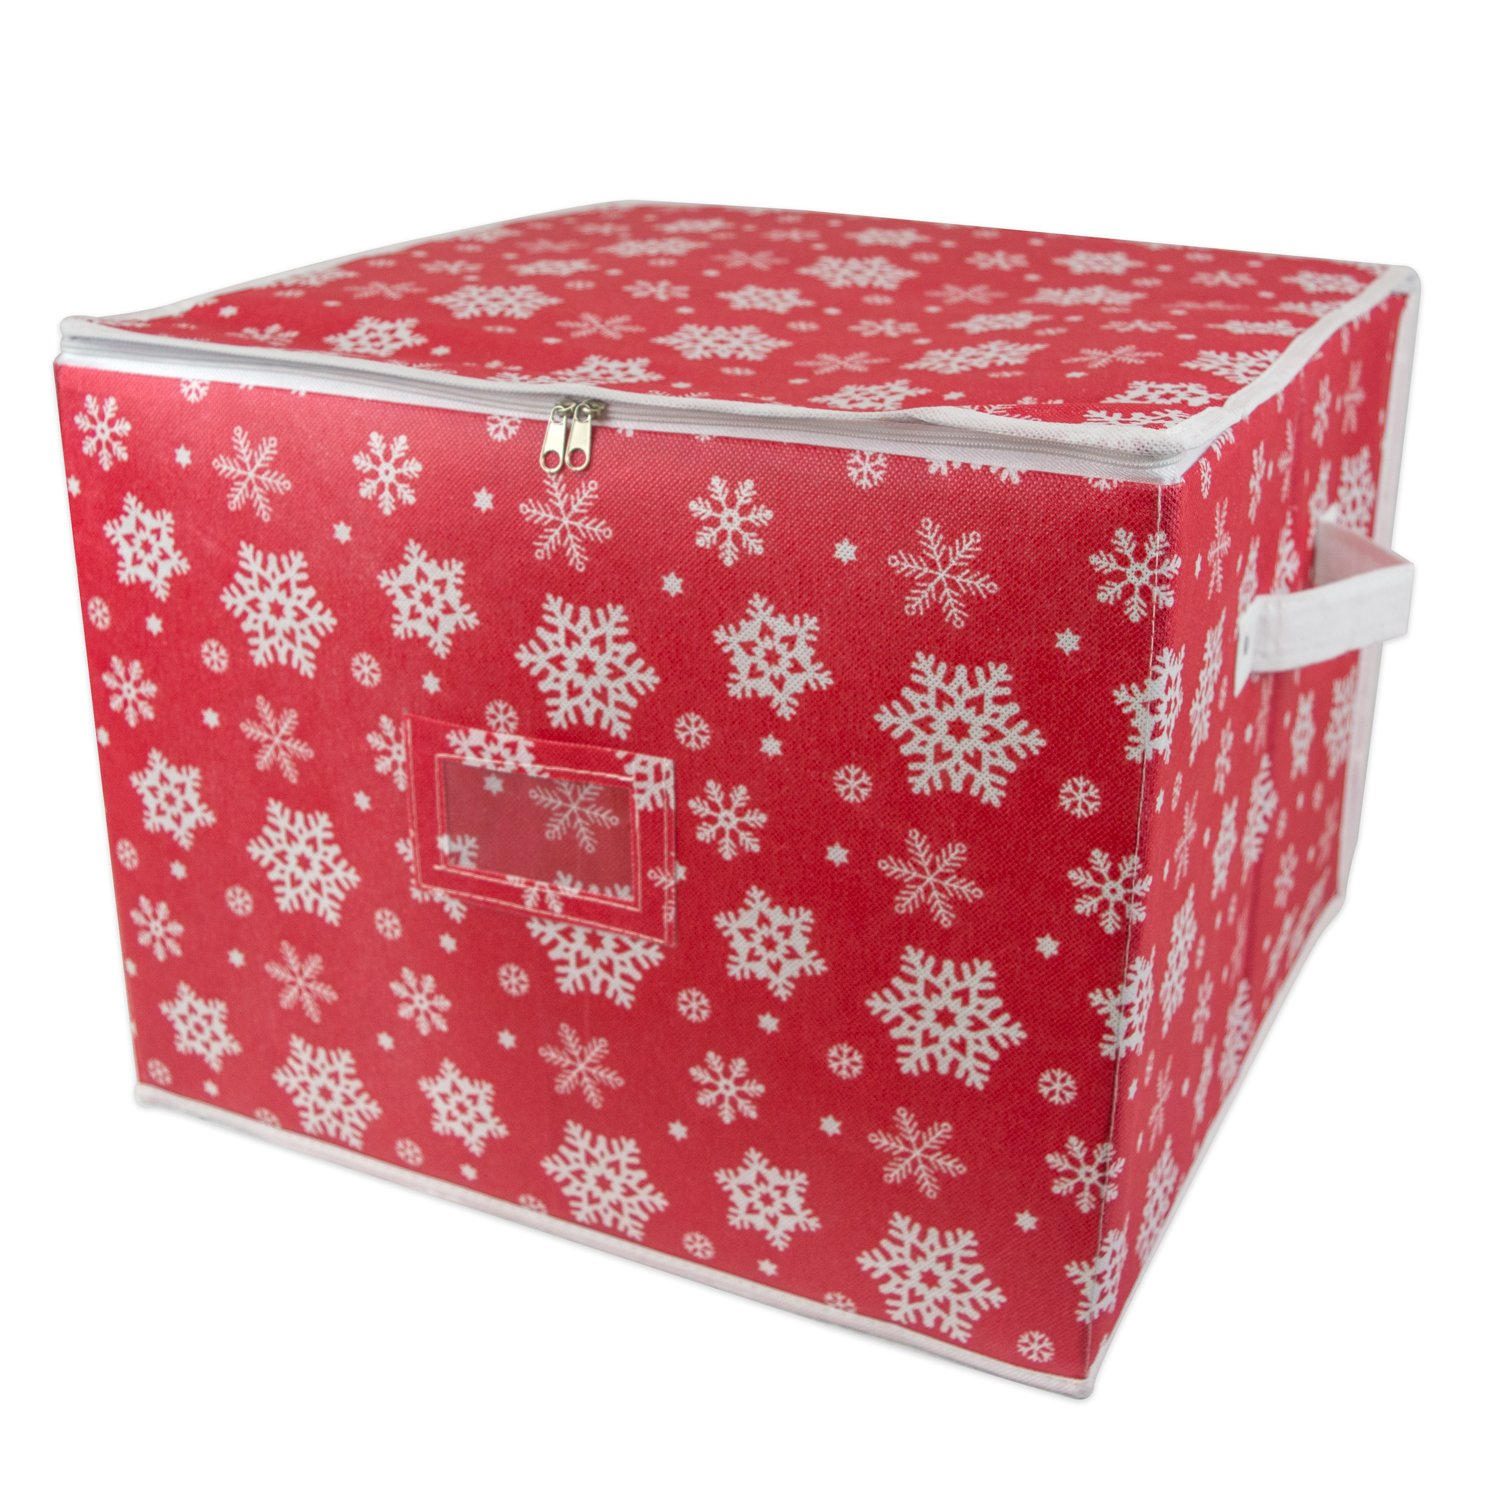 Ordinaire DII Holiday Ornament Storage Bin With Dividers U0026 Separators To Protect  Fragile Christmas Tree Decorations (